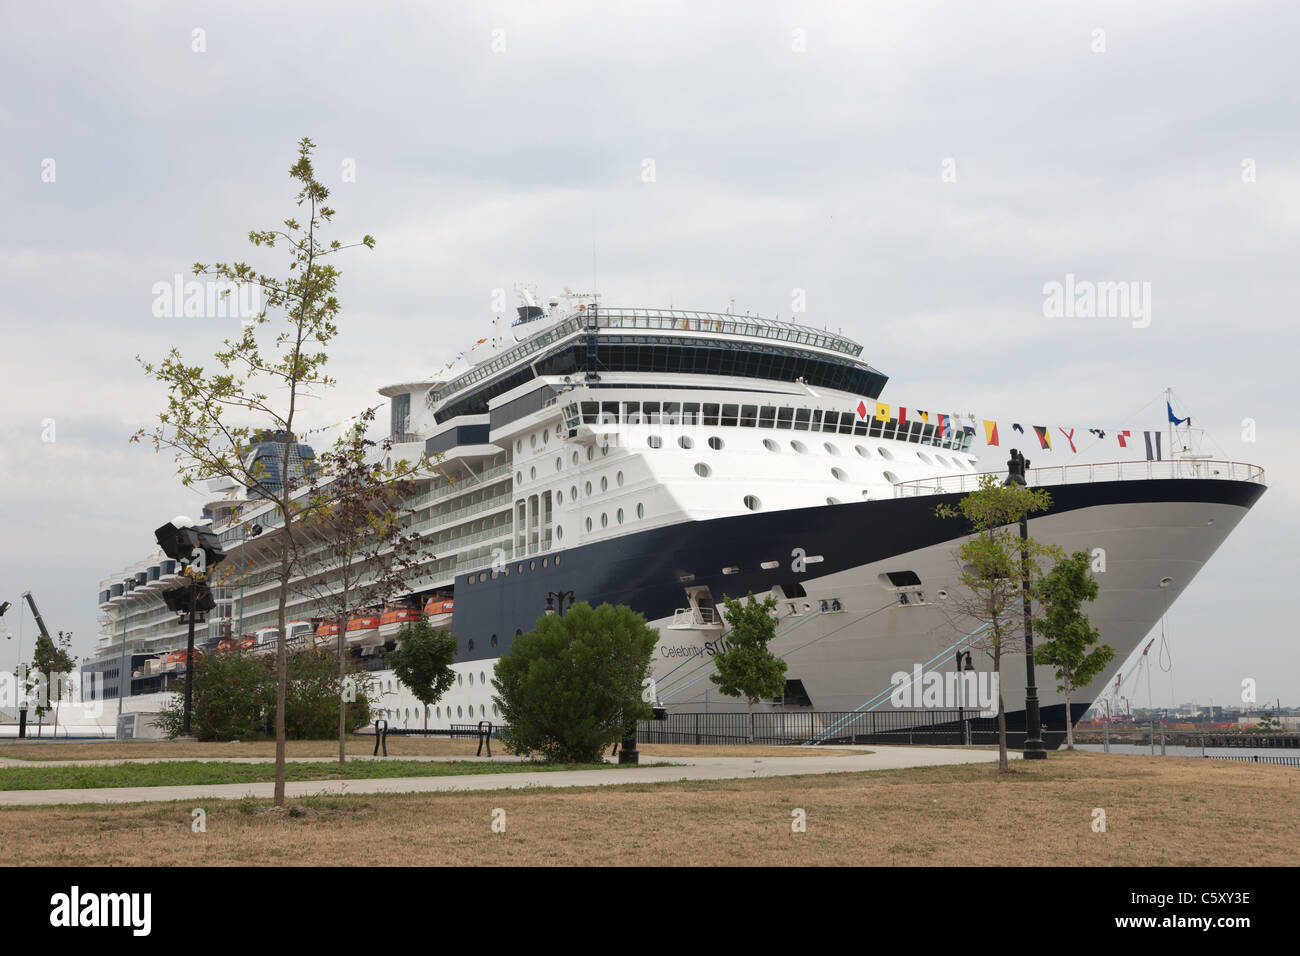 Celebrity Cruises cruise ship Celebrity Summit docked in the Cape Liberty Cruise Port in Bayonne, New Jersey. - Stock Image